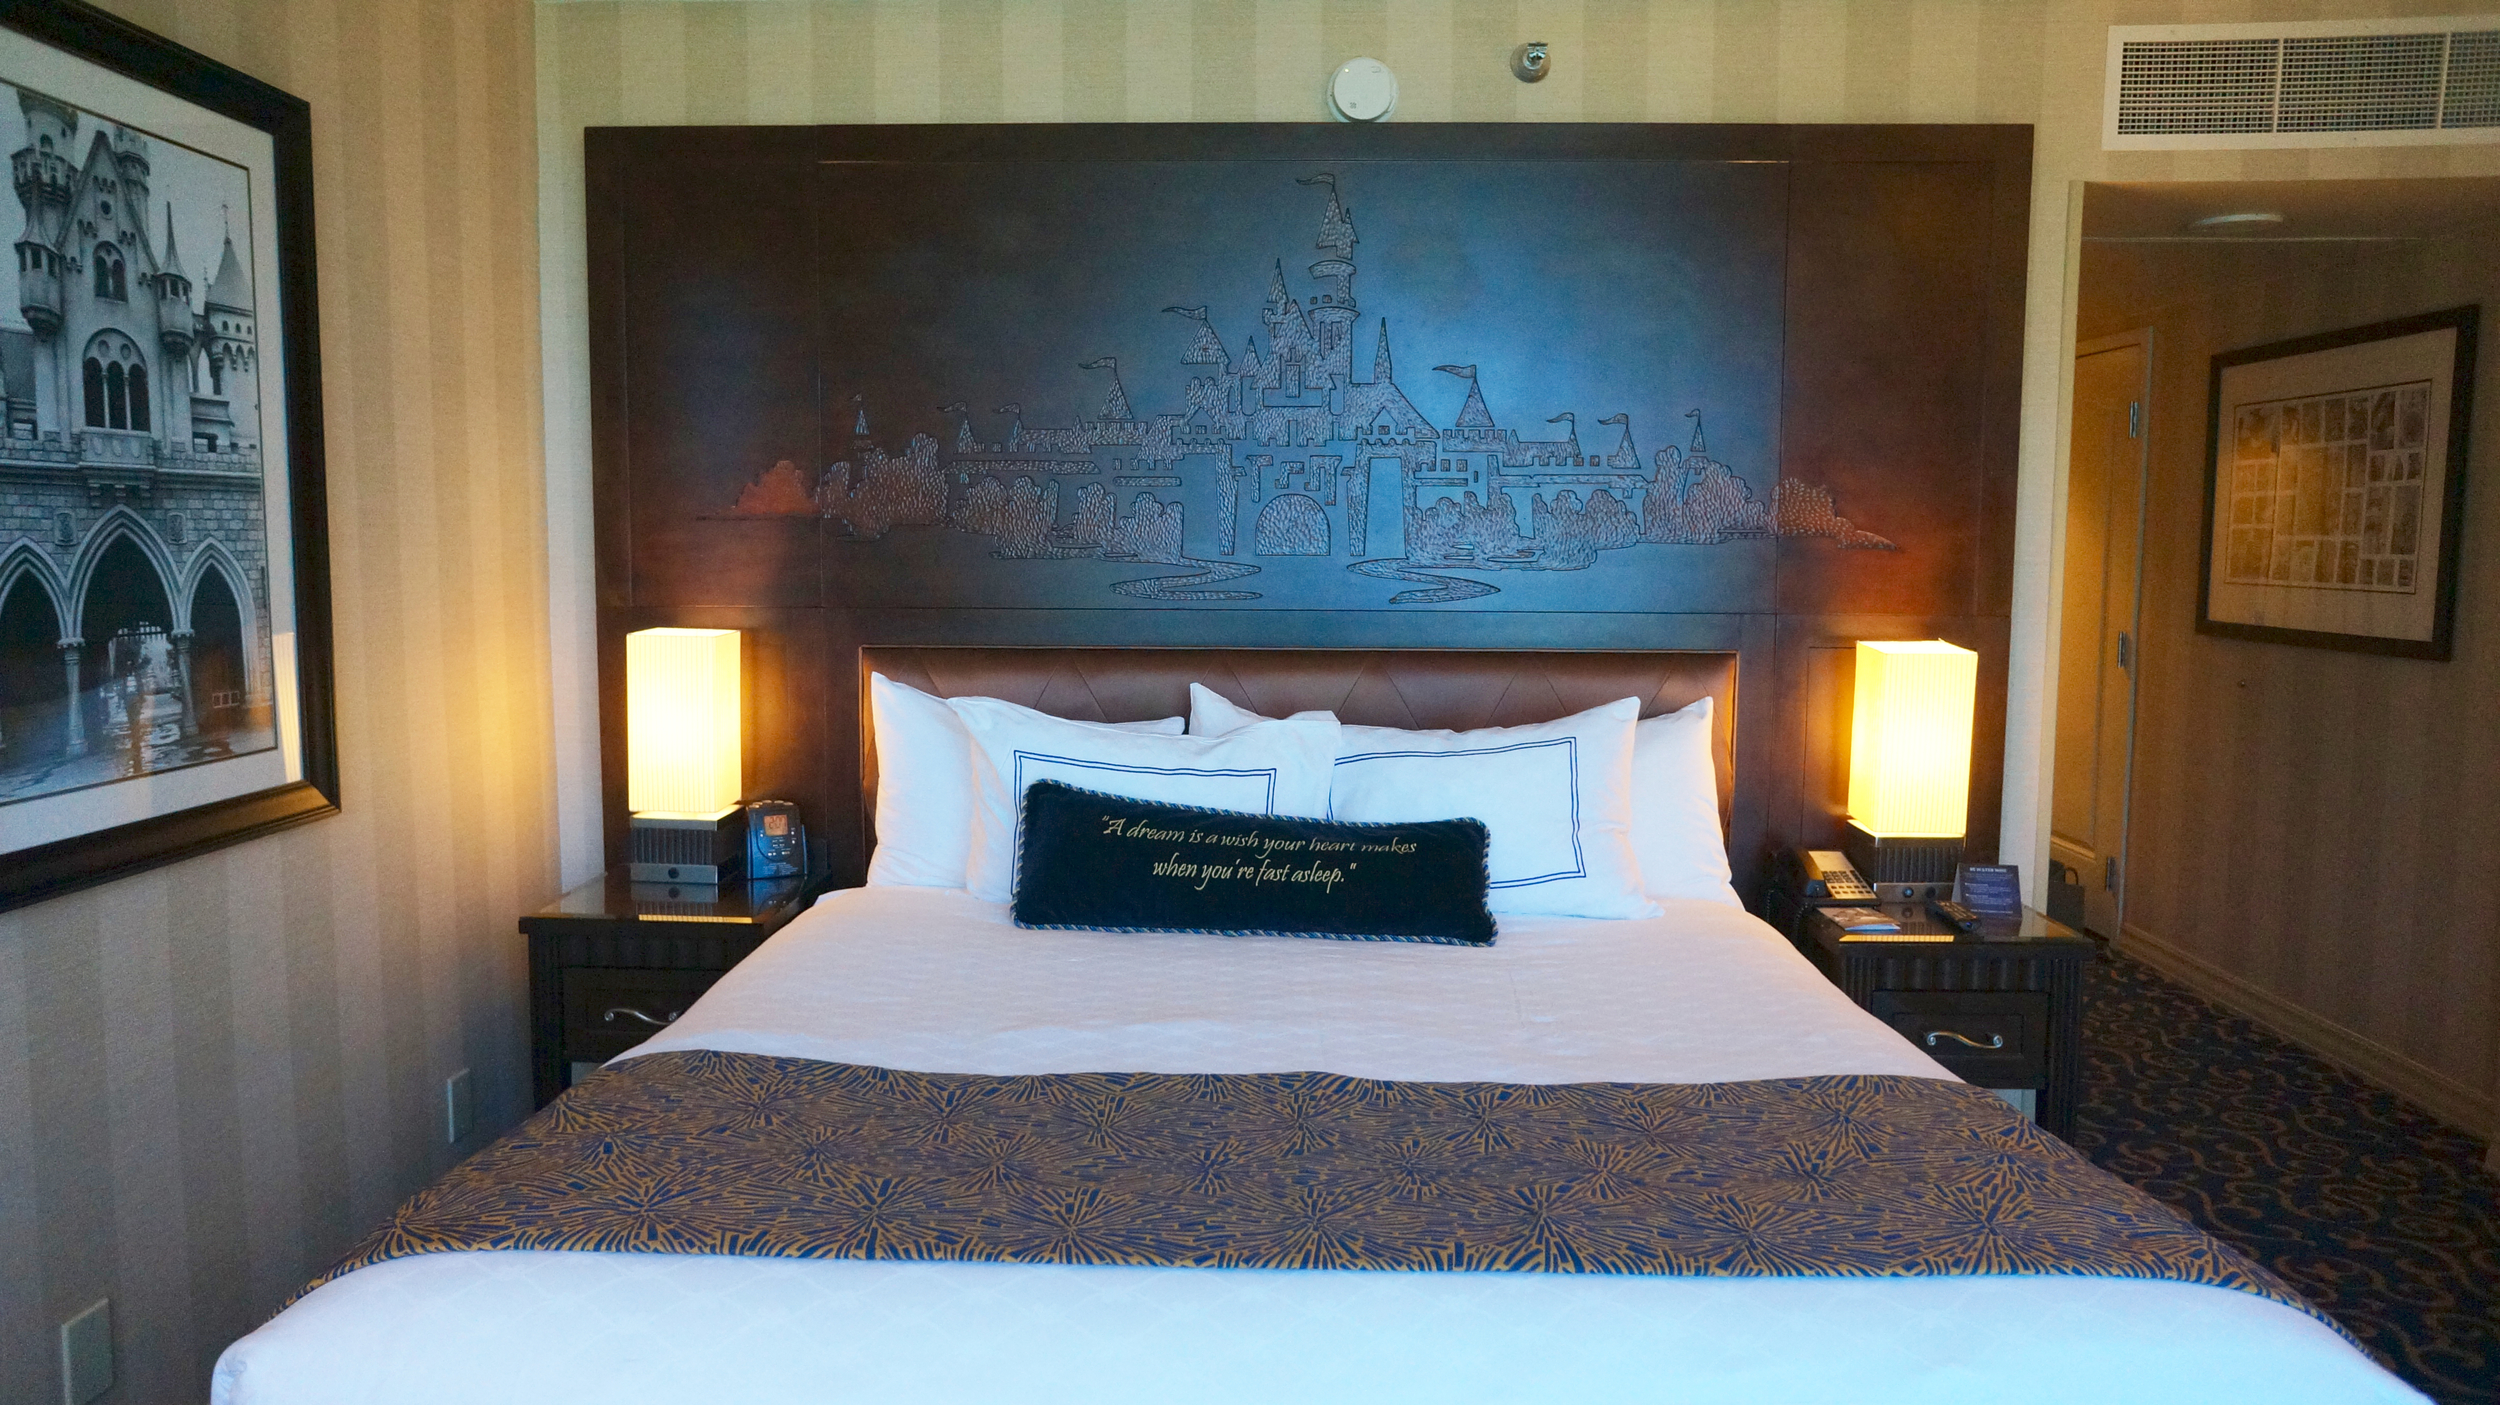 disneyland-hotel-room-bed.jpg